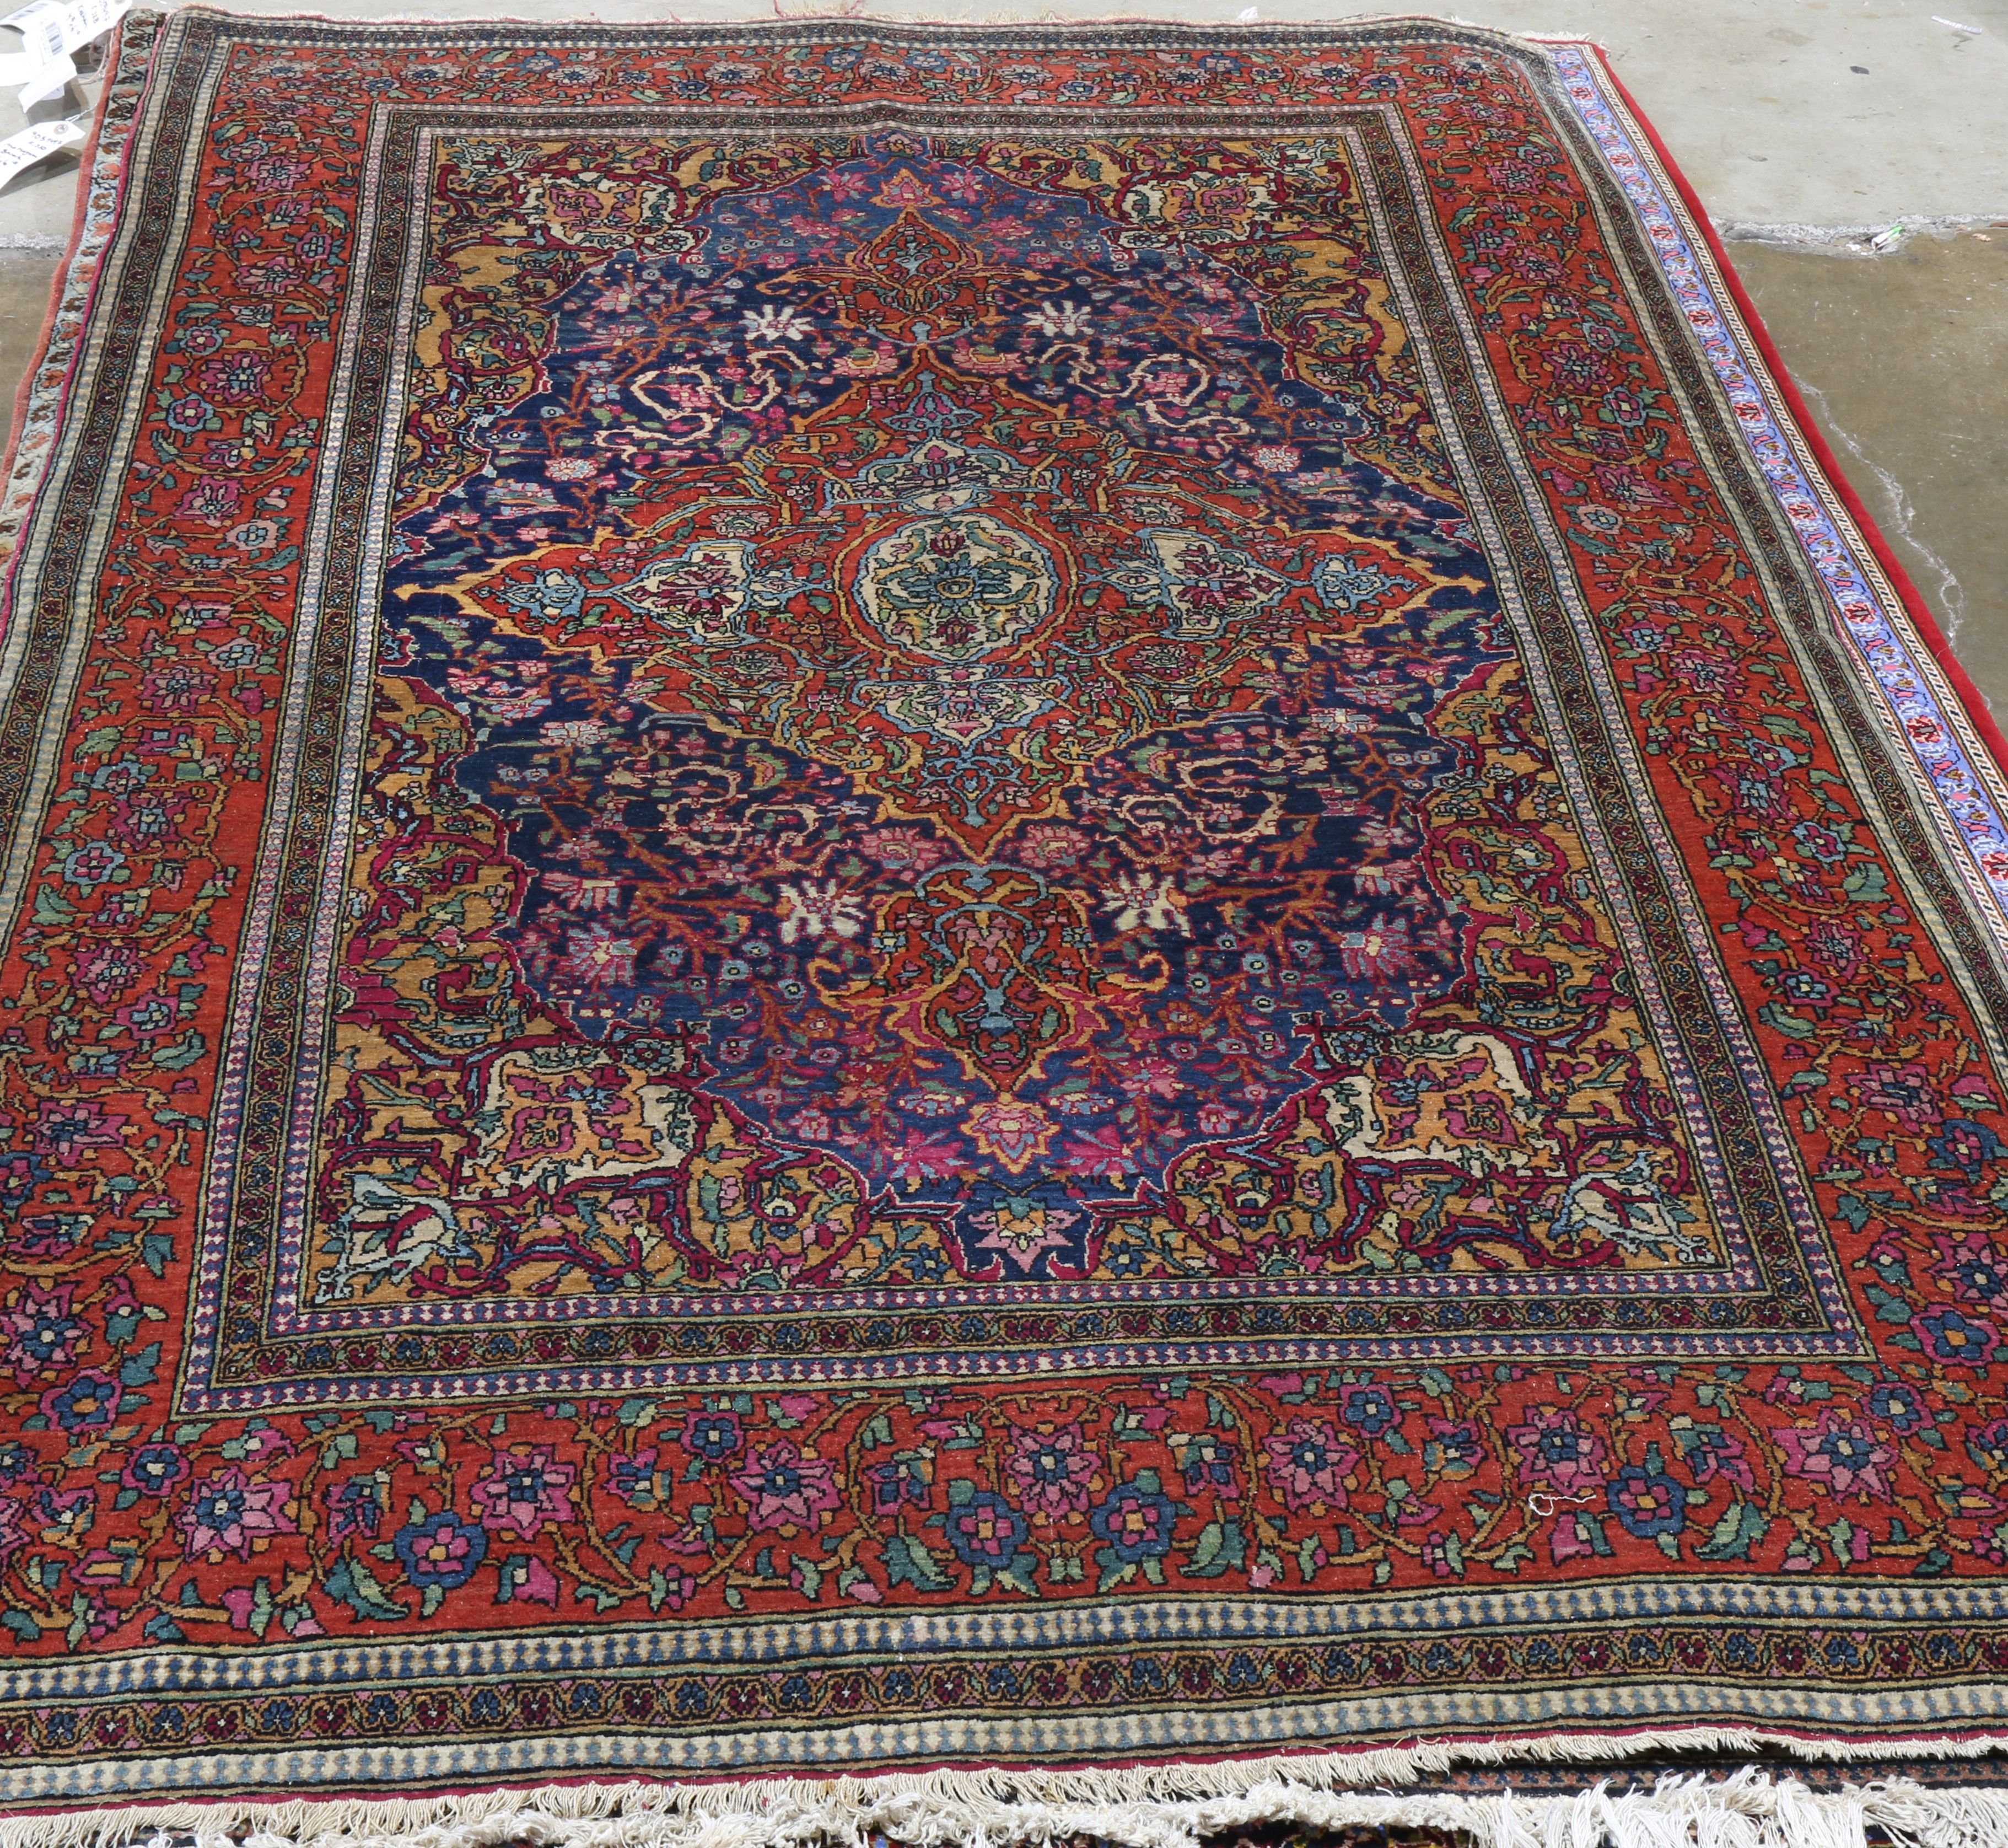 ANTIQUE MOBARAKEH ISFAHAN RUG 8' X 5'